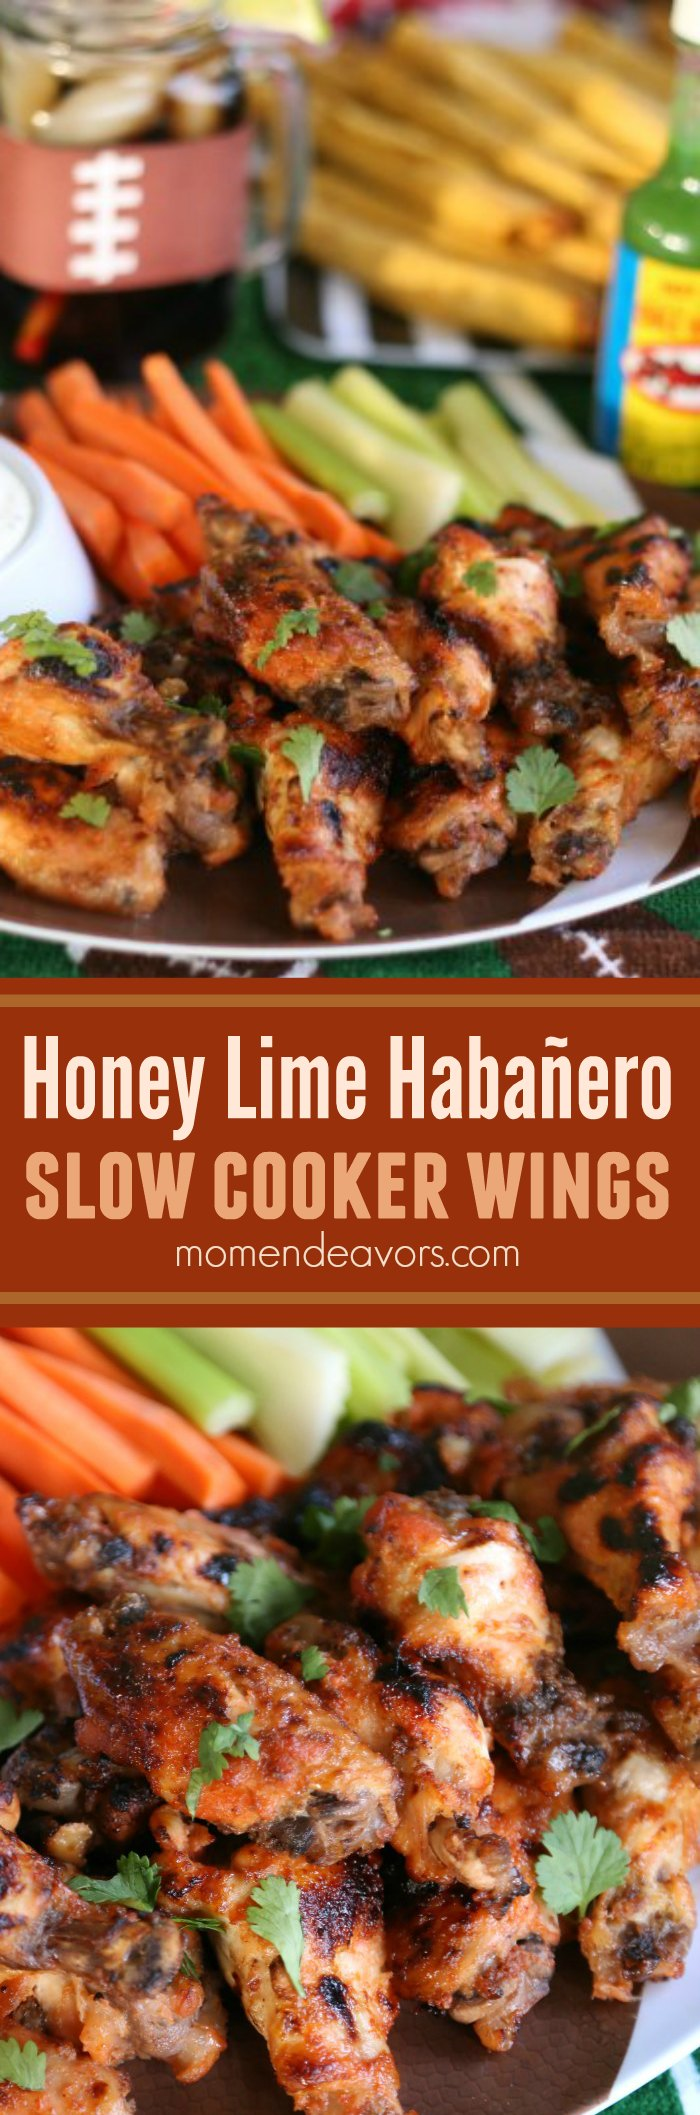 Honey Lime Habañero Slow Cooker Wings